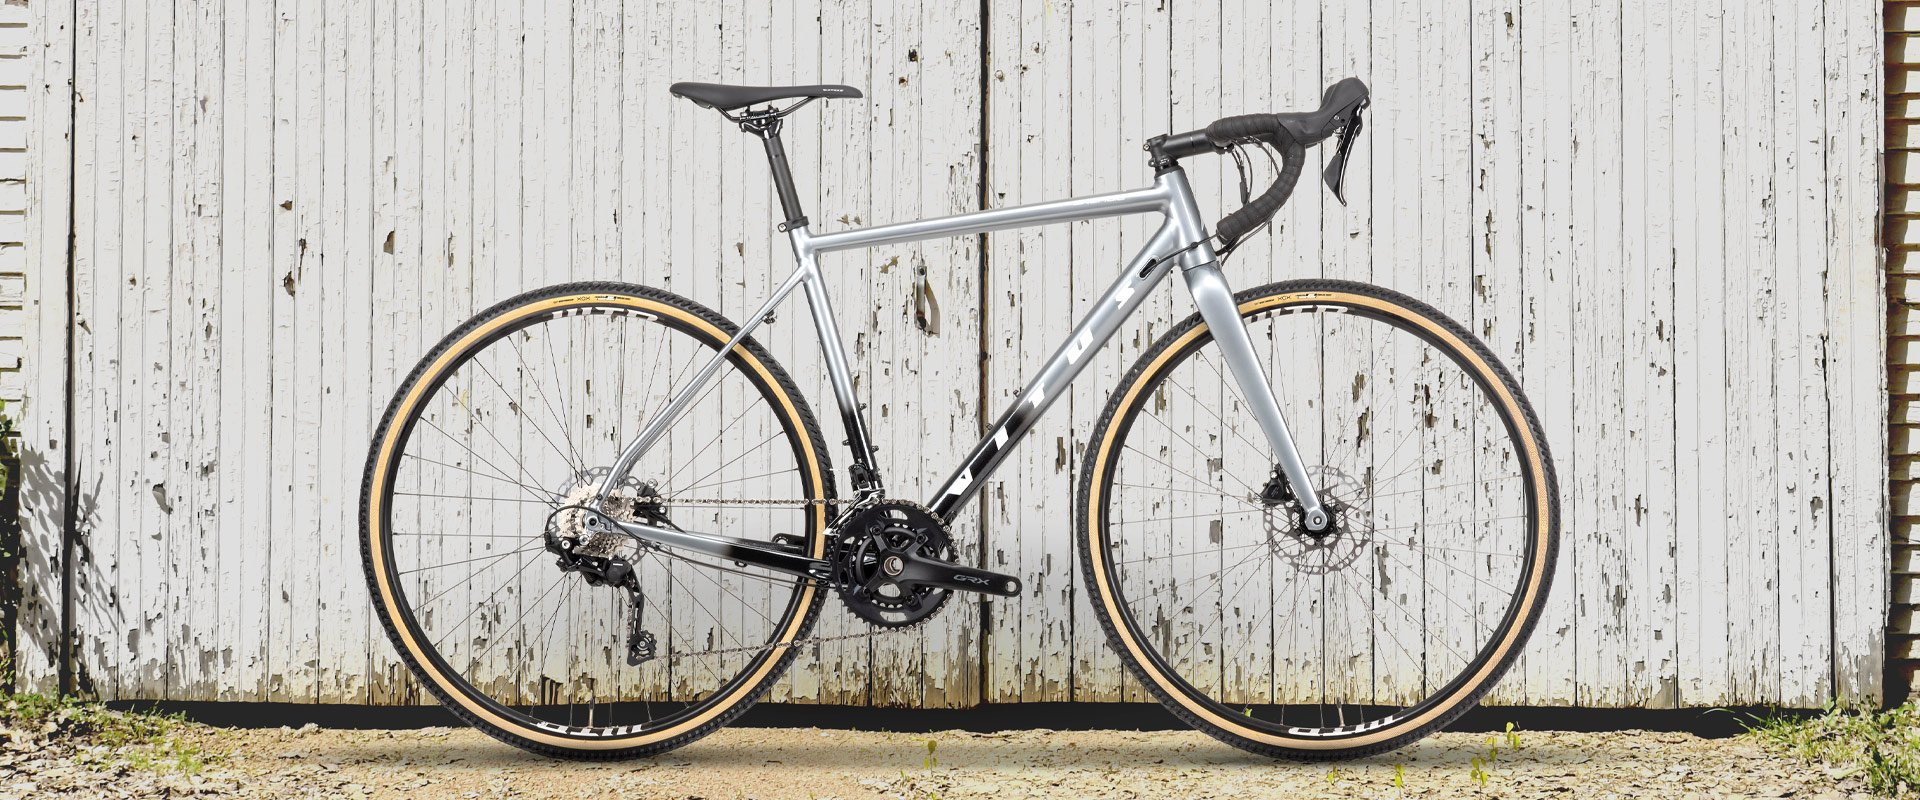 Vitus Energie Cyclocross Bike GRX 400